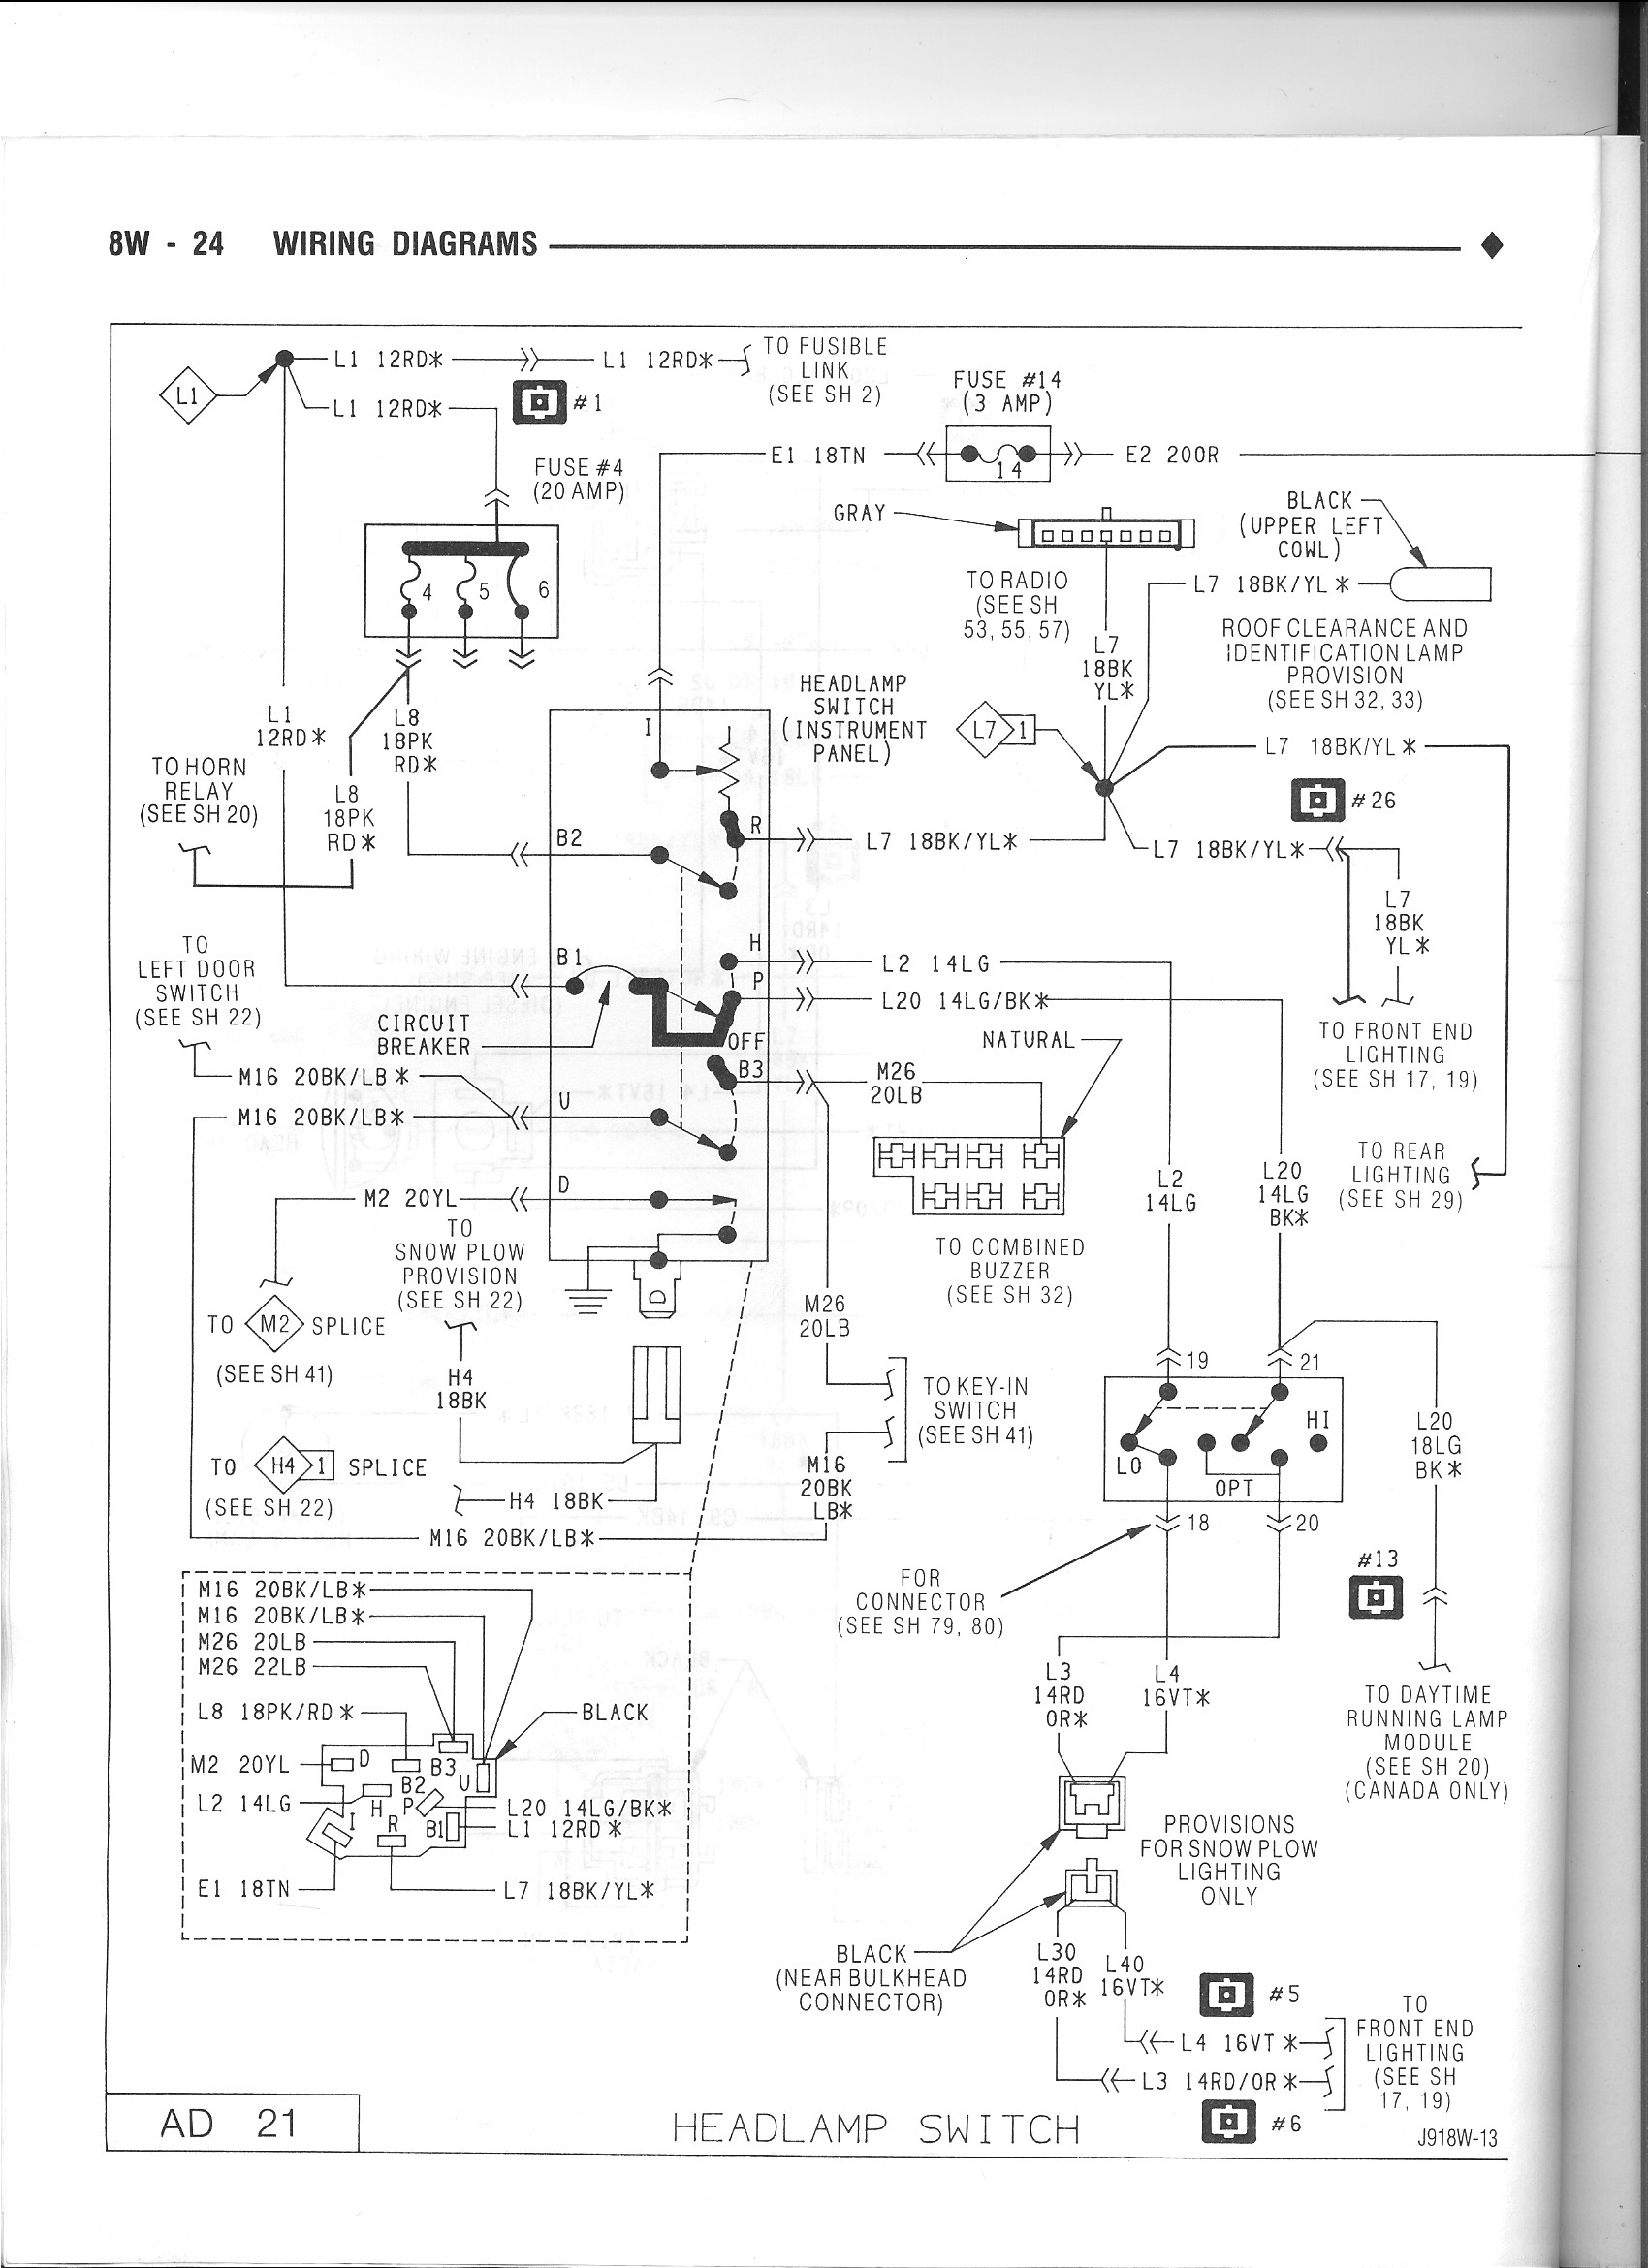 Chevy C5500 Wiring Diagram - Wiring Diagram For 88 Jeep Comanche -  sportster-wiring.tukune.jeanjaures37.fr | 2004 5500 Chevy Kodiak Wiring Diagram |  | Wiring Diagram Resource